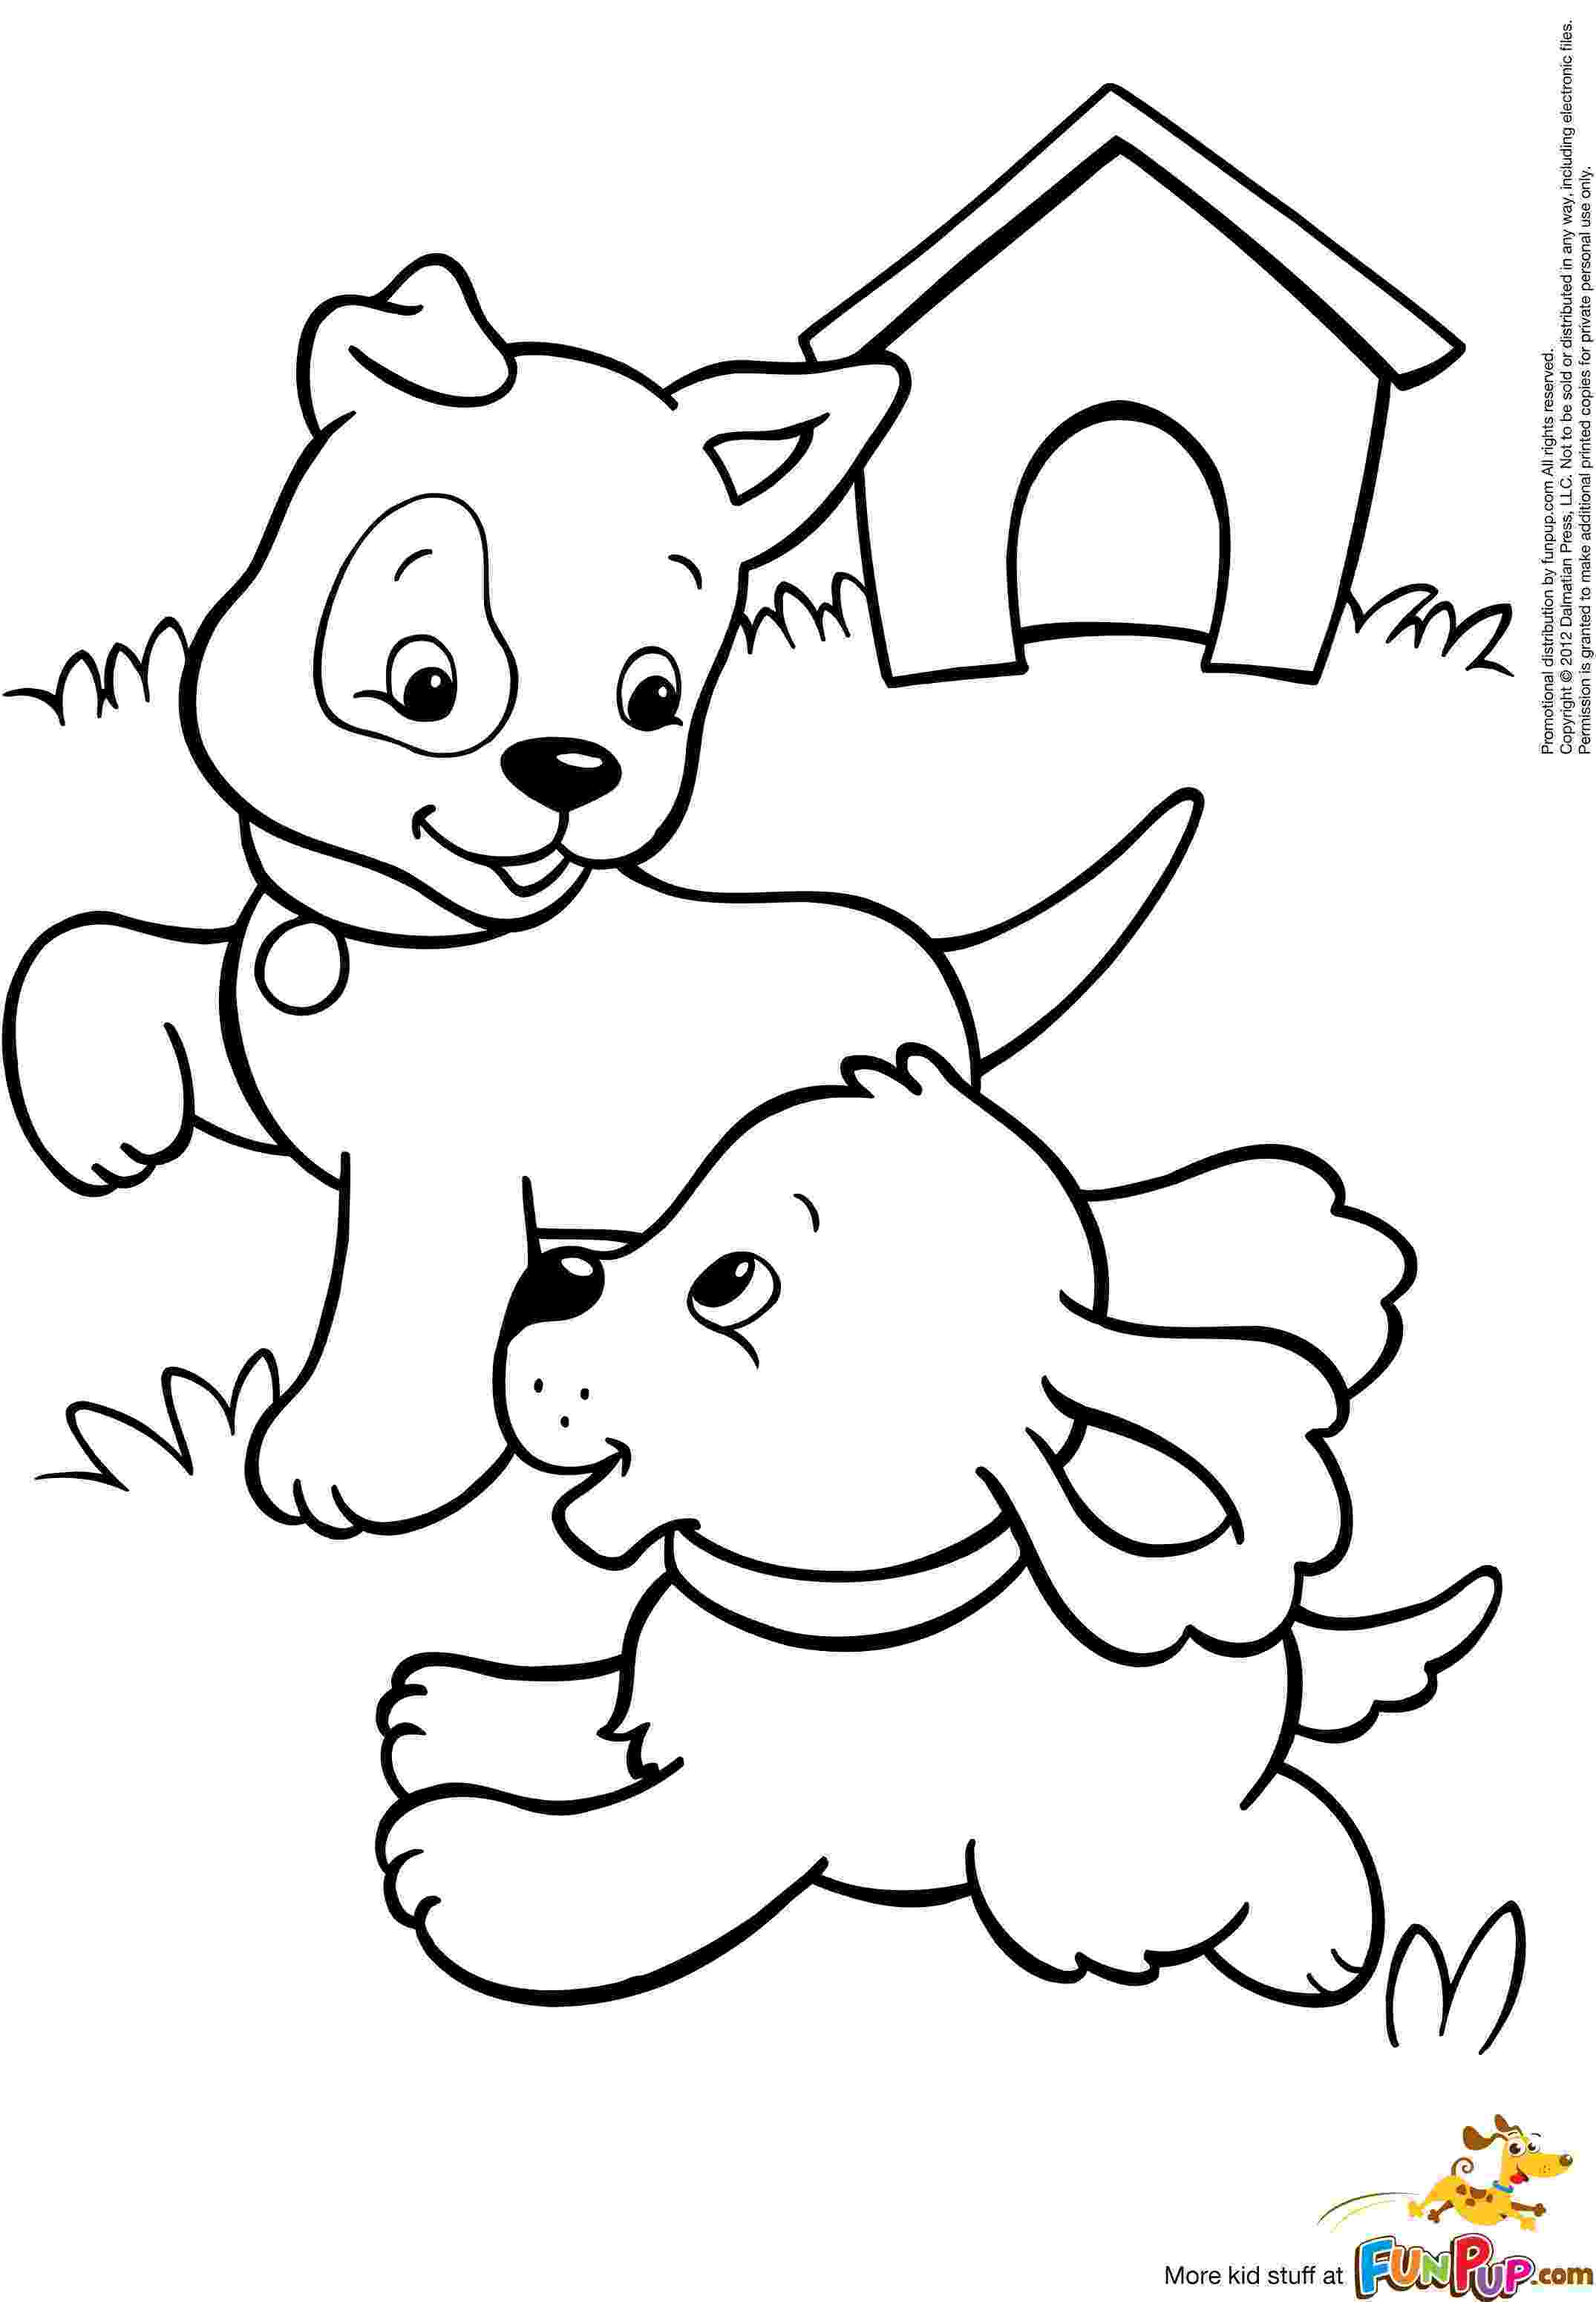 dogs to print realistic puppy coloring pages download and print for free print dogs to